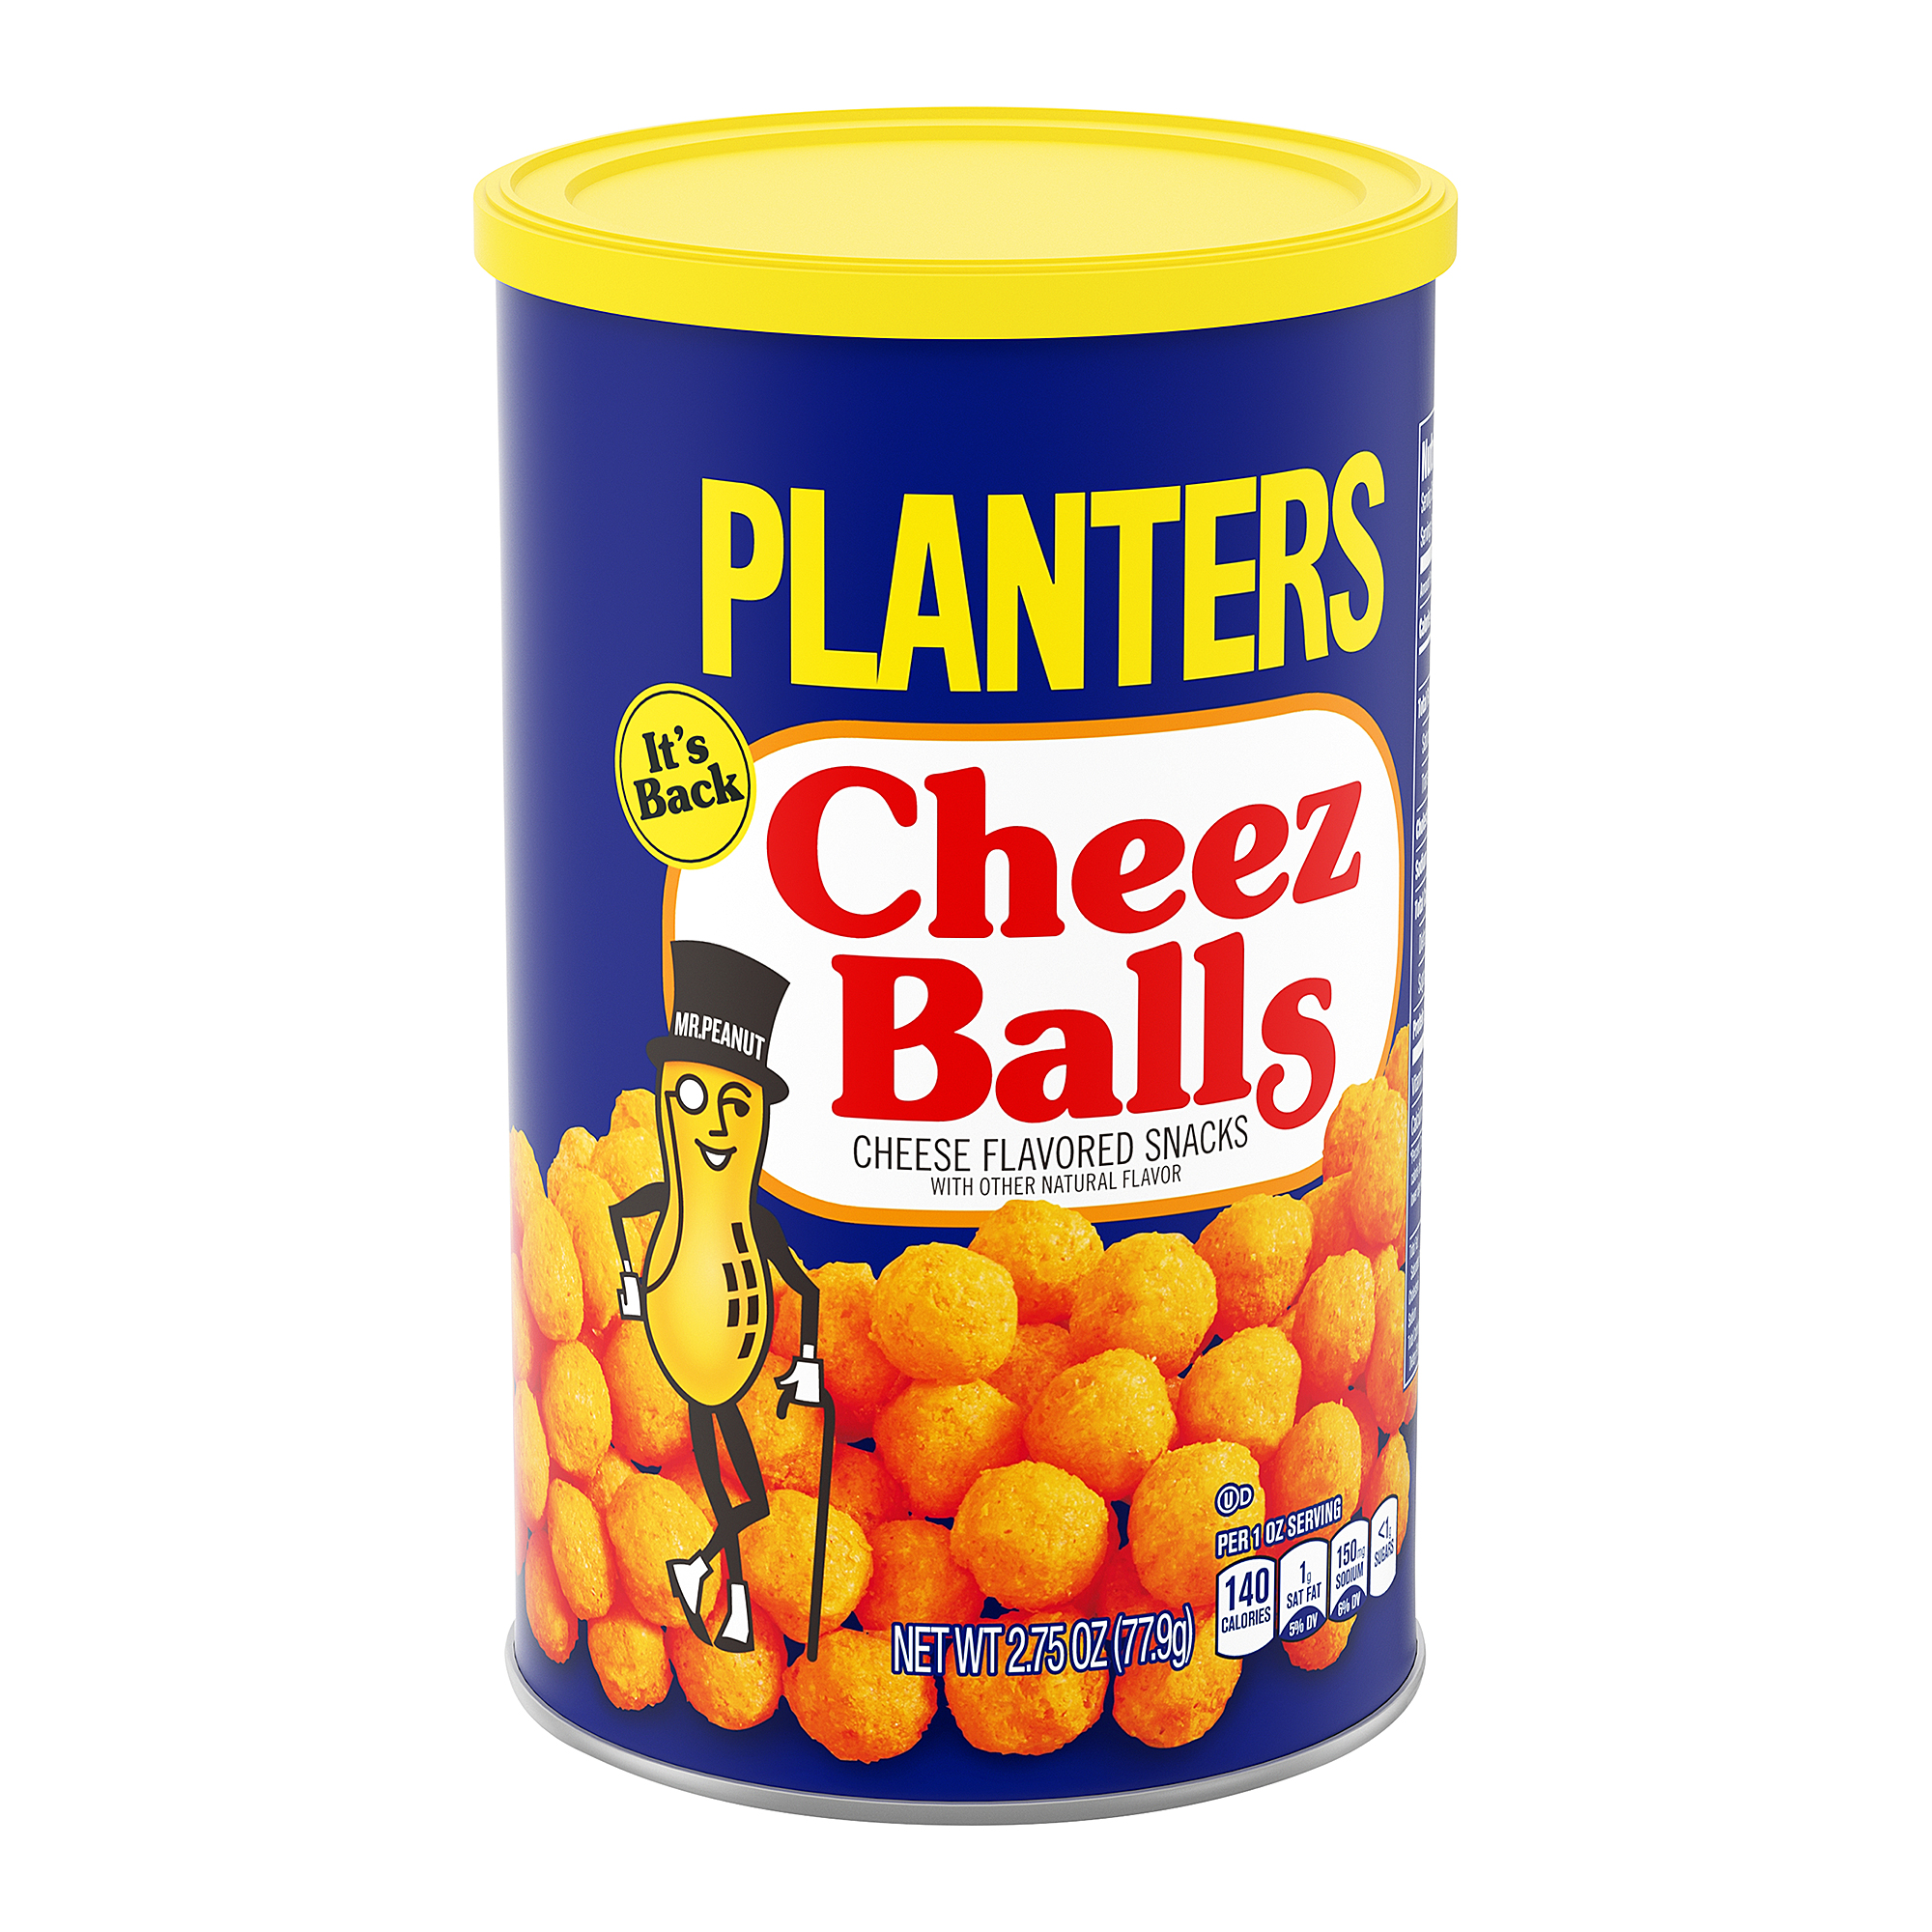 Cheez Balls and Cheez Curls Are Coming Back on planters product, planters peanut tin, planters in suffolk virginia, planters dry roasted peanuts, planters peanuts collectibles, planters salted peanuts, planters peanut car, planters peanut ad, planters nuts, planters cocktail peanuts recall, planters peanut toys, planters peanut commercial, planters peanut bank, planters peanut plush, planters peanut figurine, planters penuts, planters redskin peanuts, vintage planters peanut, planters peanut doll, planters chipotle peanuts,